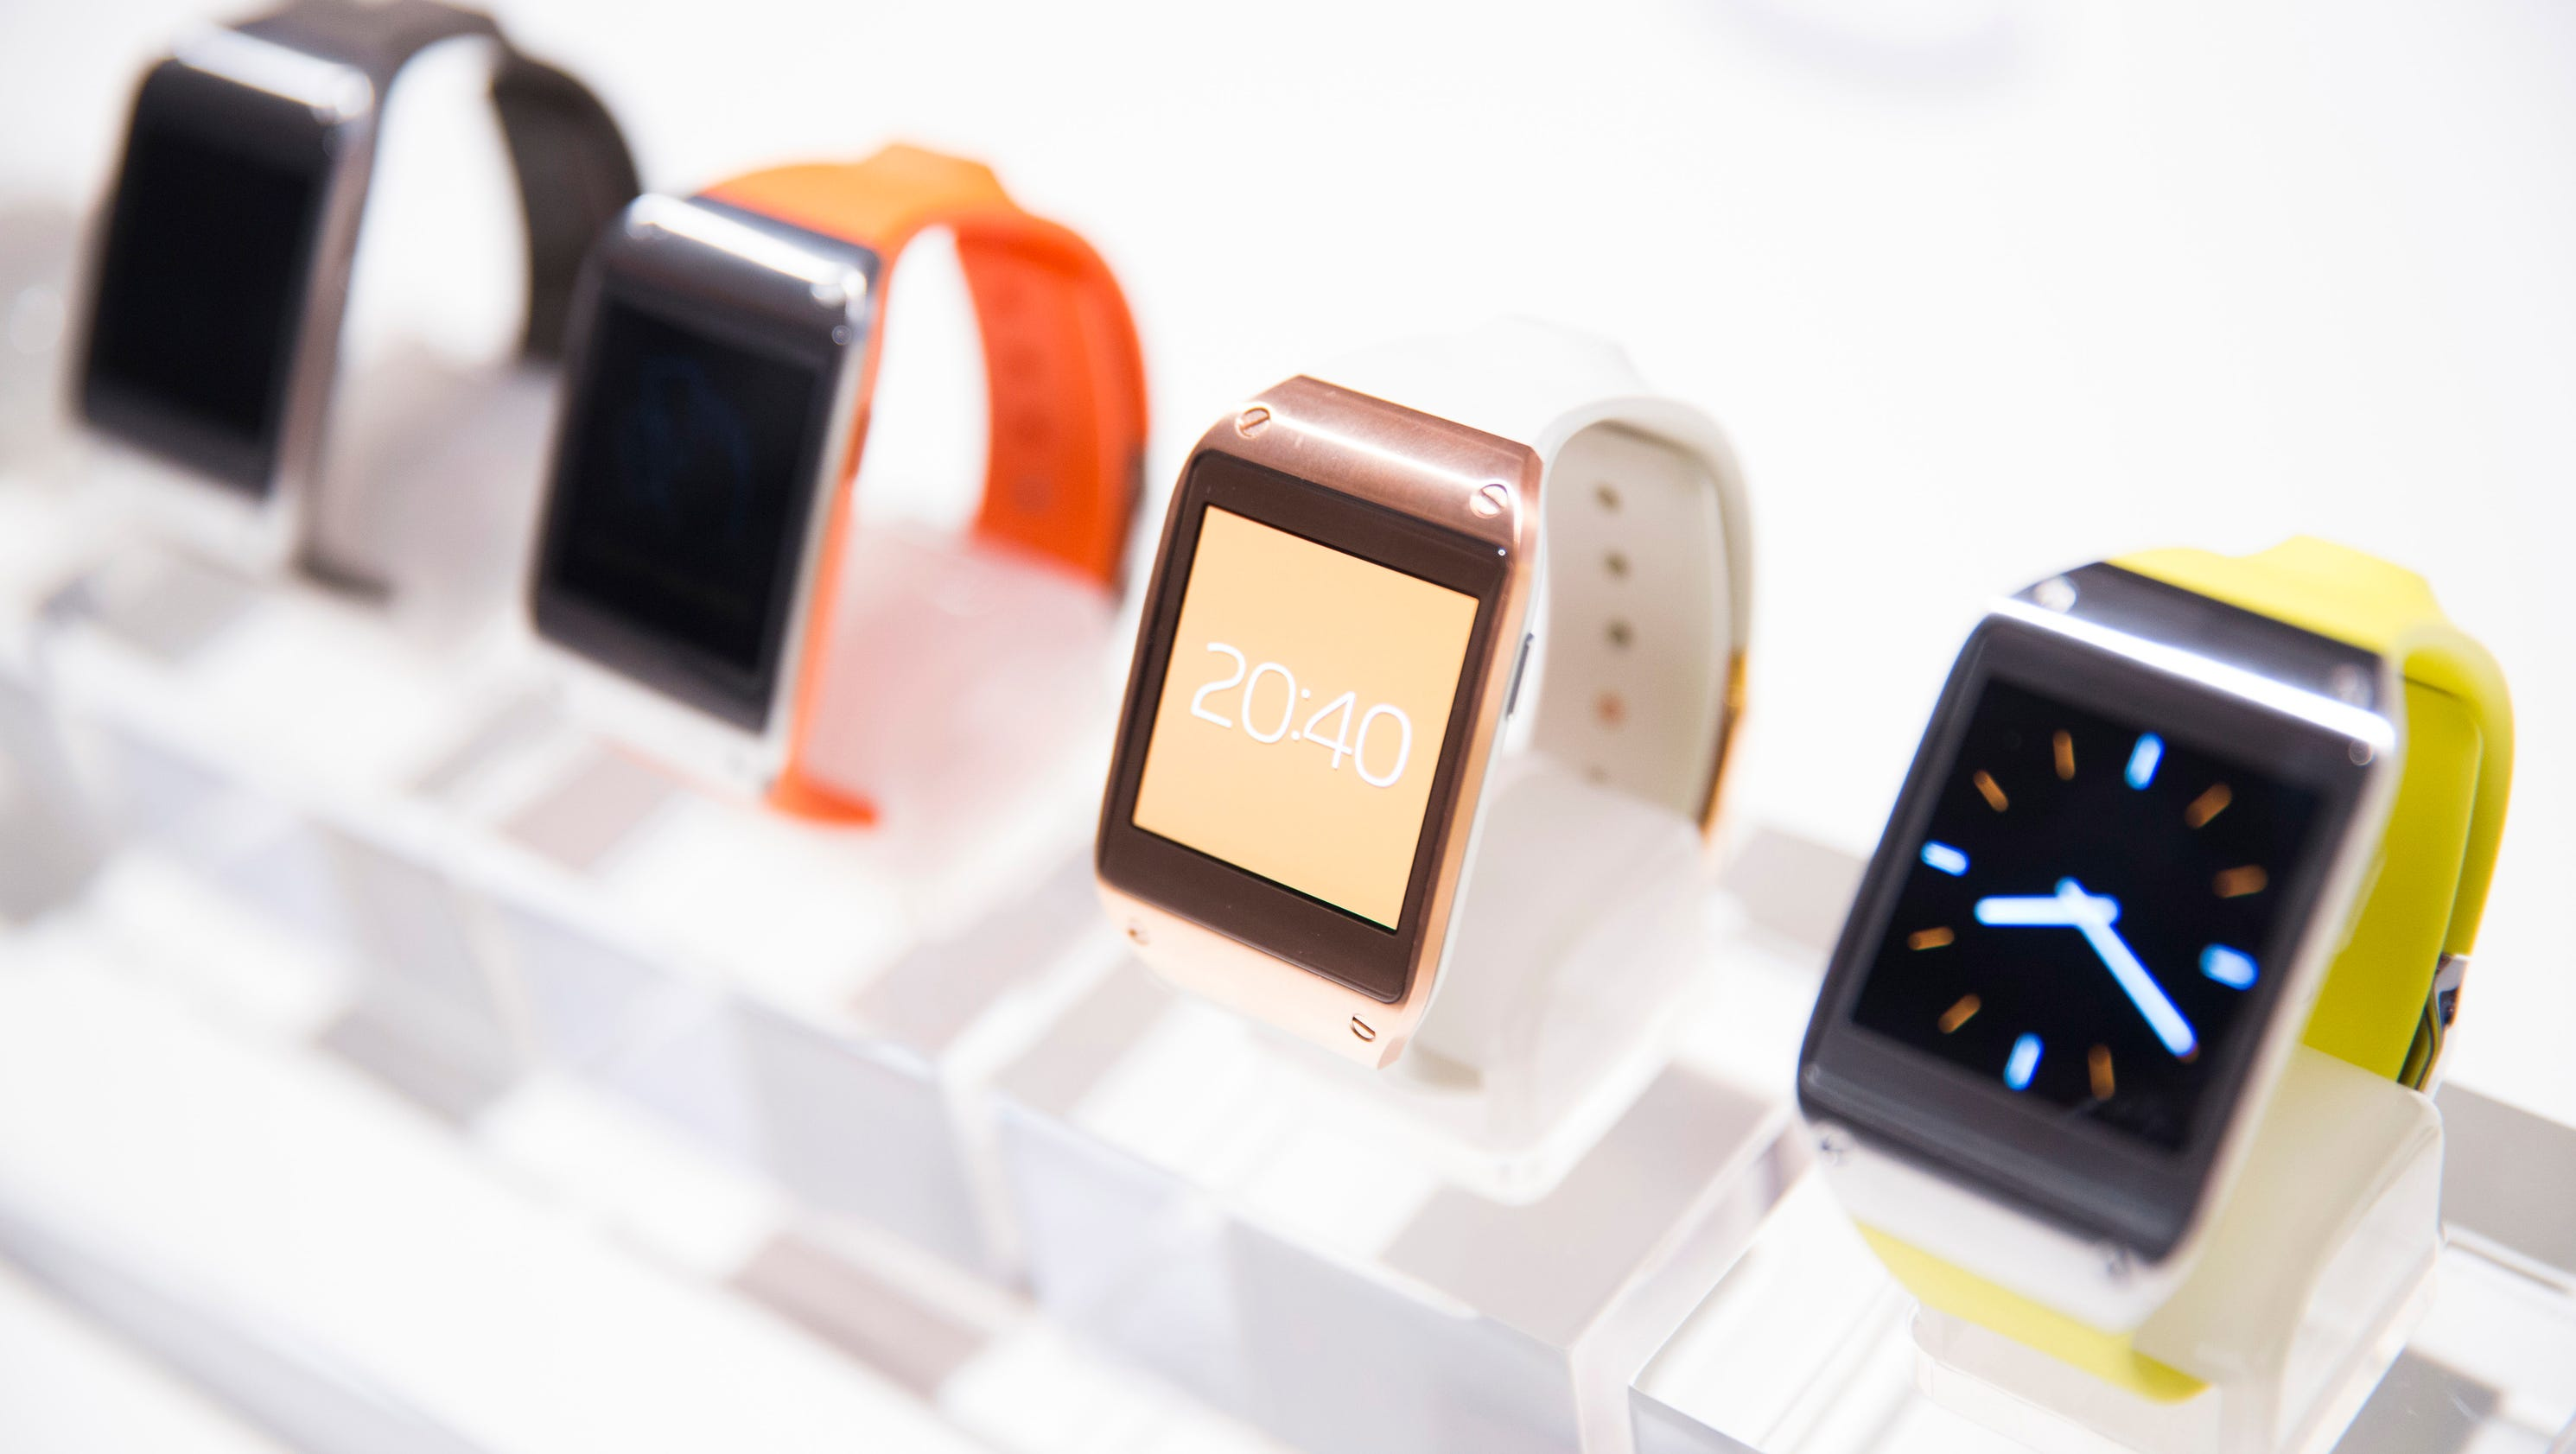 Samsung aims to redefine future of smartwatches